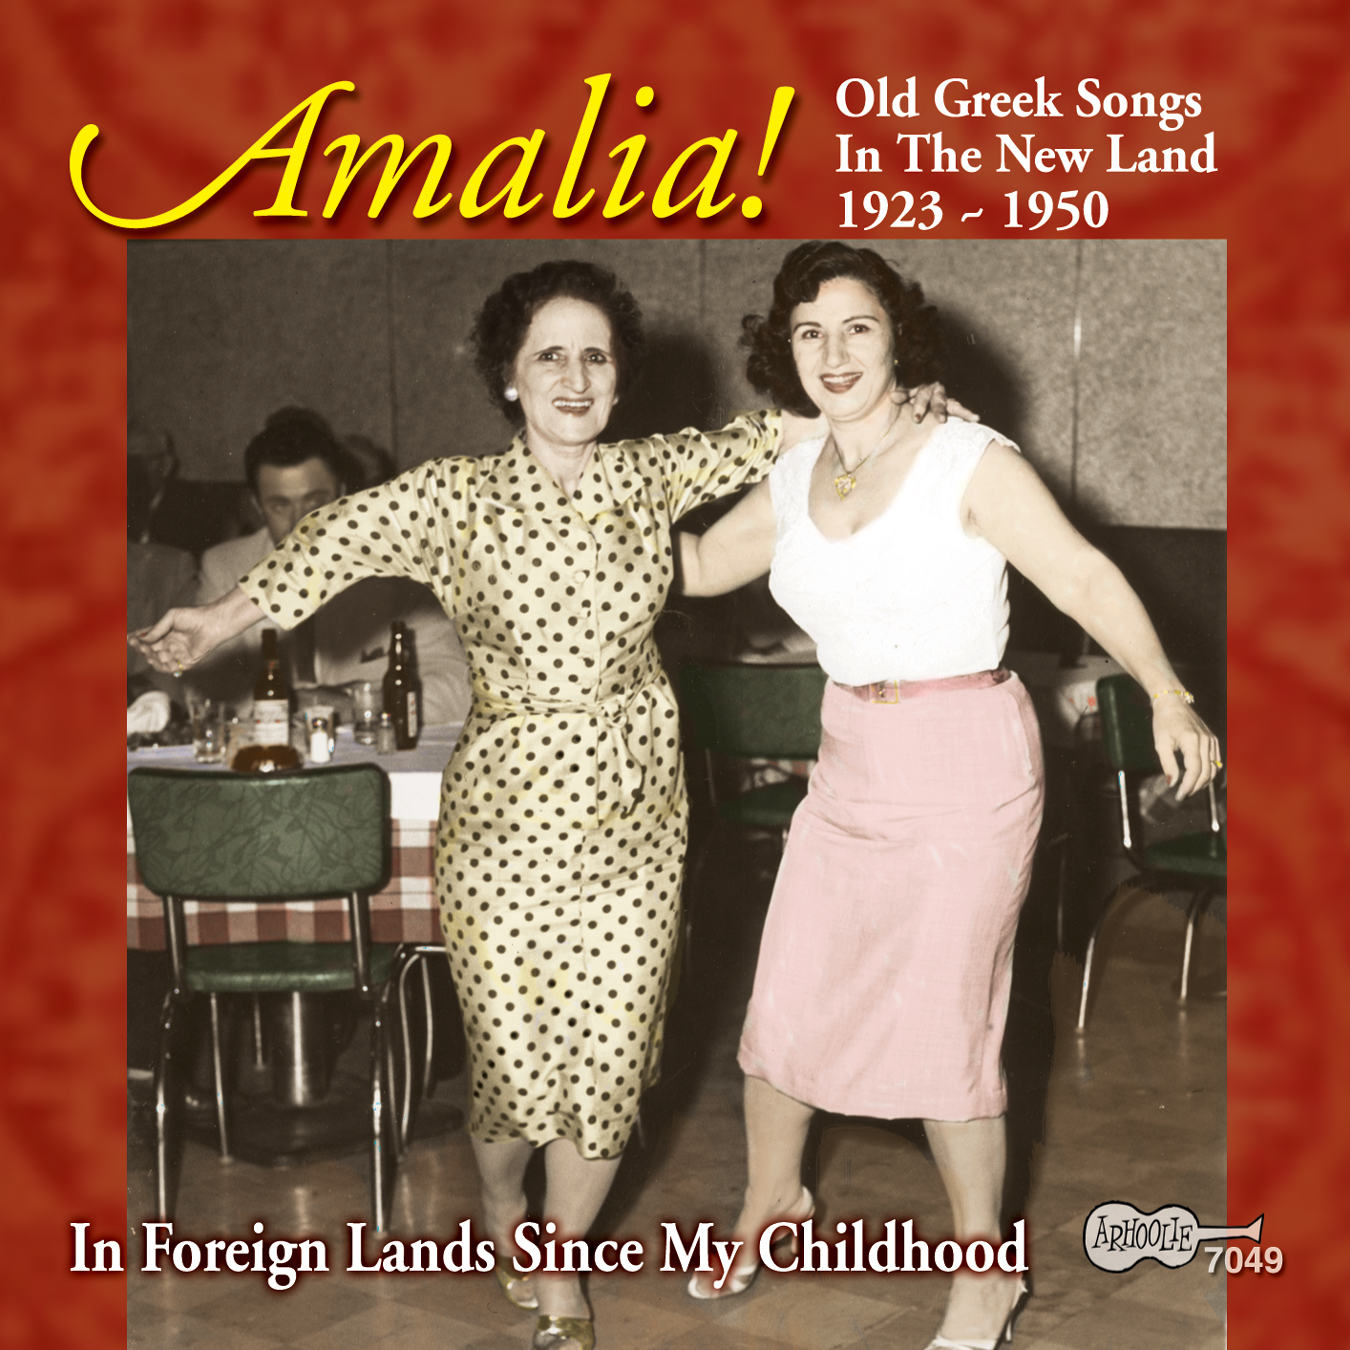 Old Greek Songs in the New Land 1923-1950: In Foreign Lands